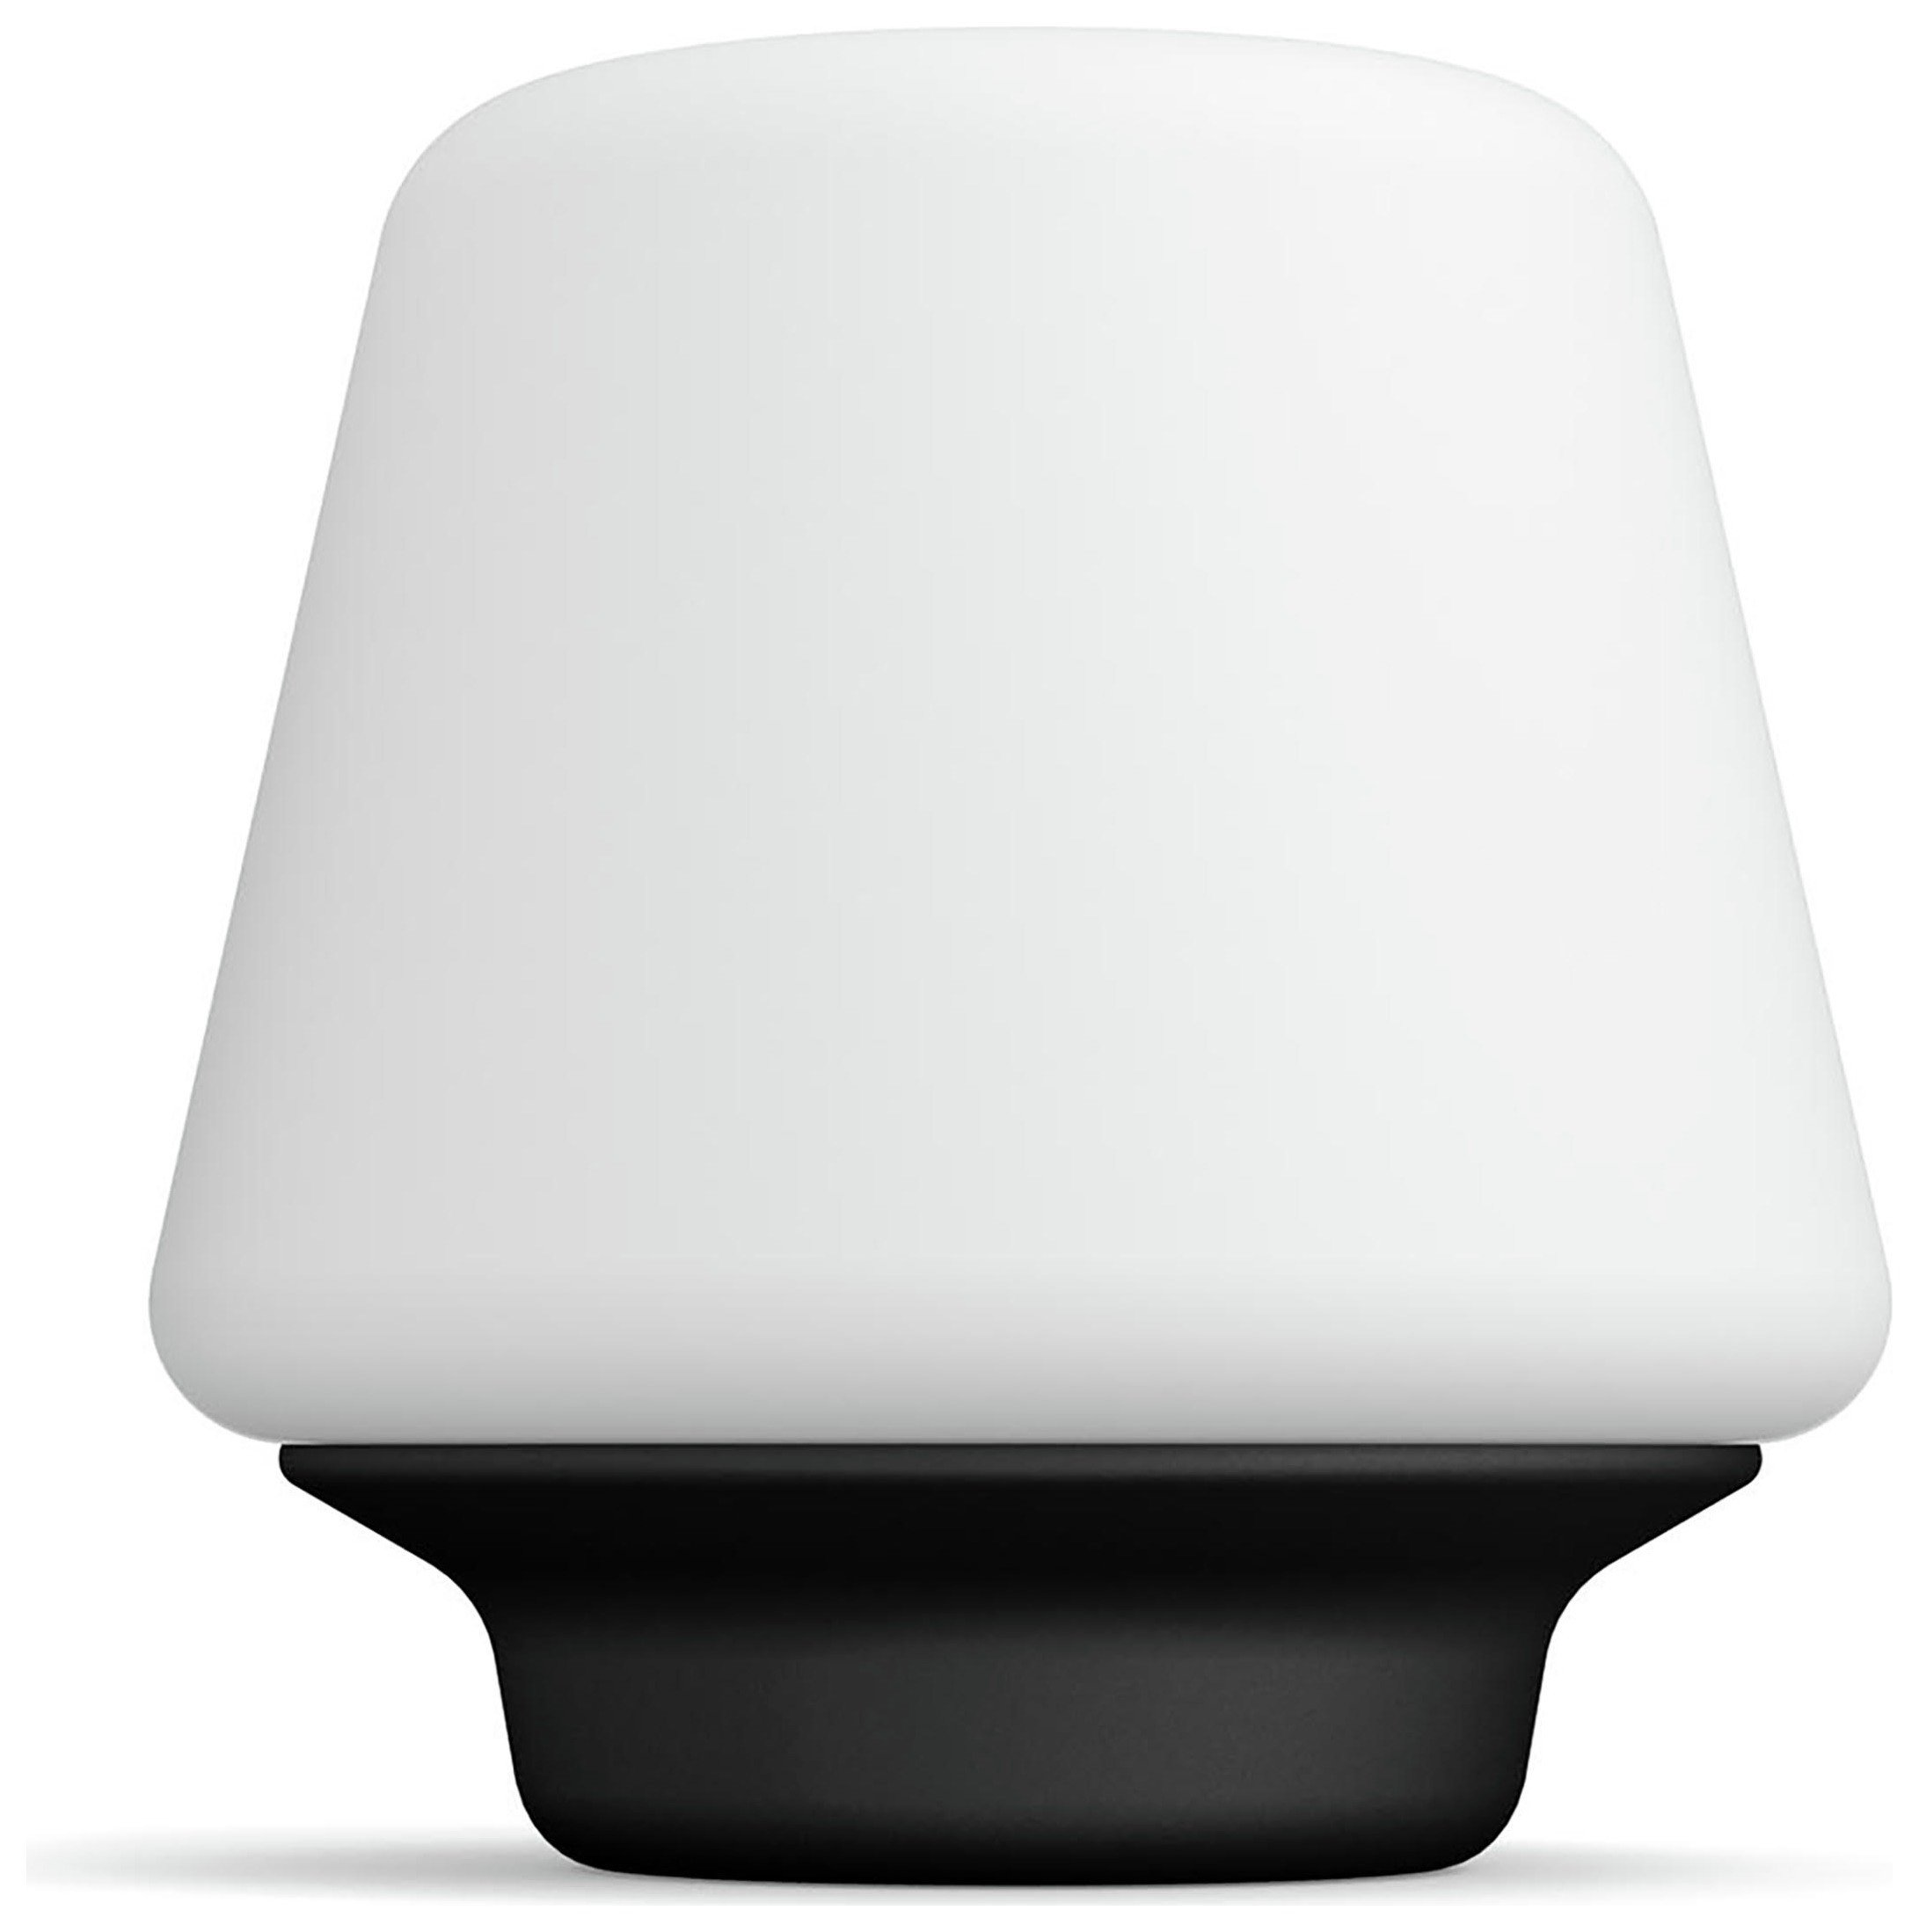 Image of Philips Hue White Ambiance Wellness Table Lamp.